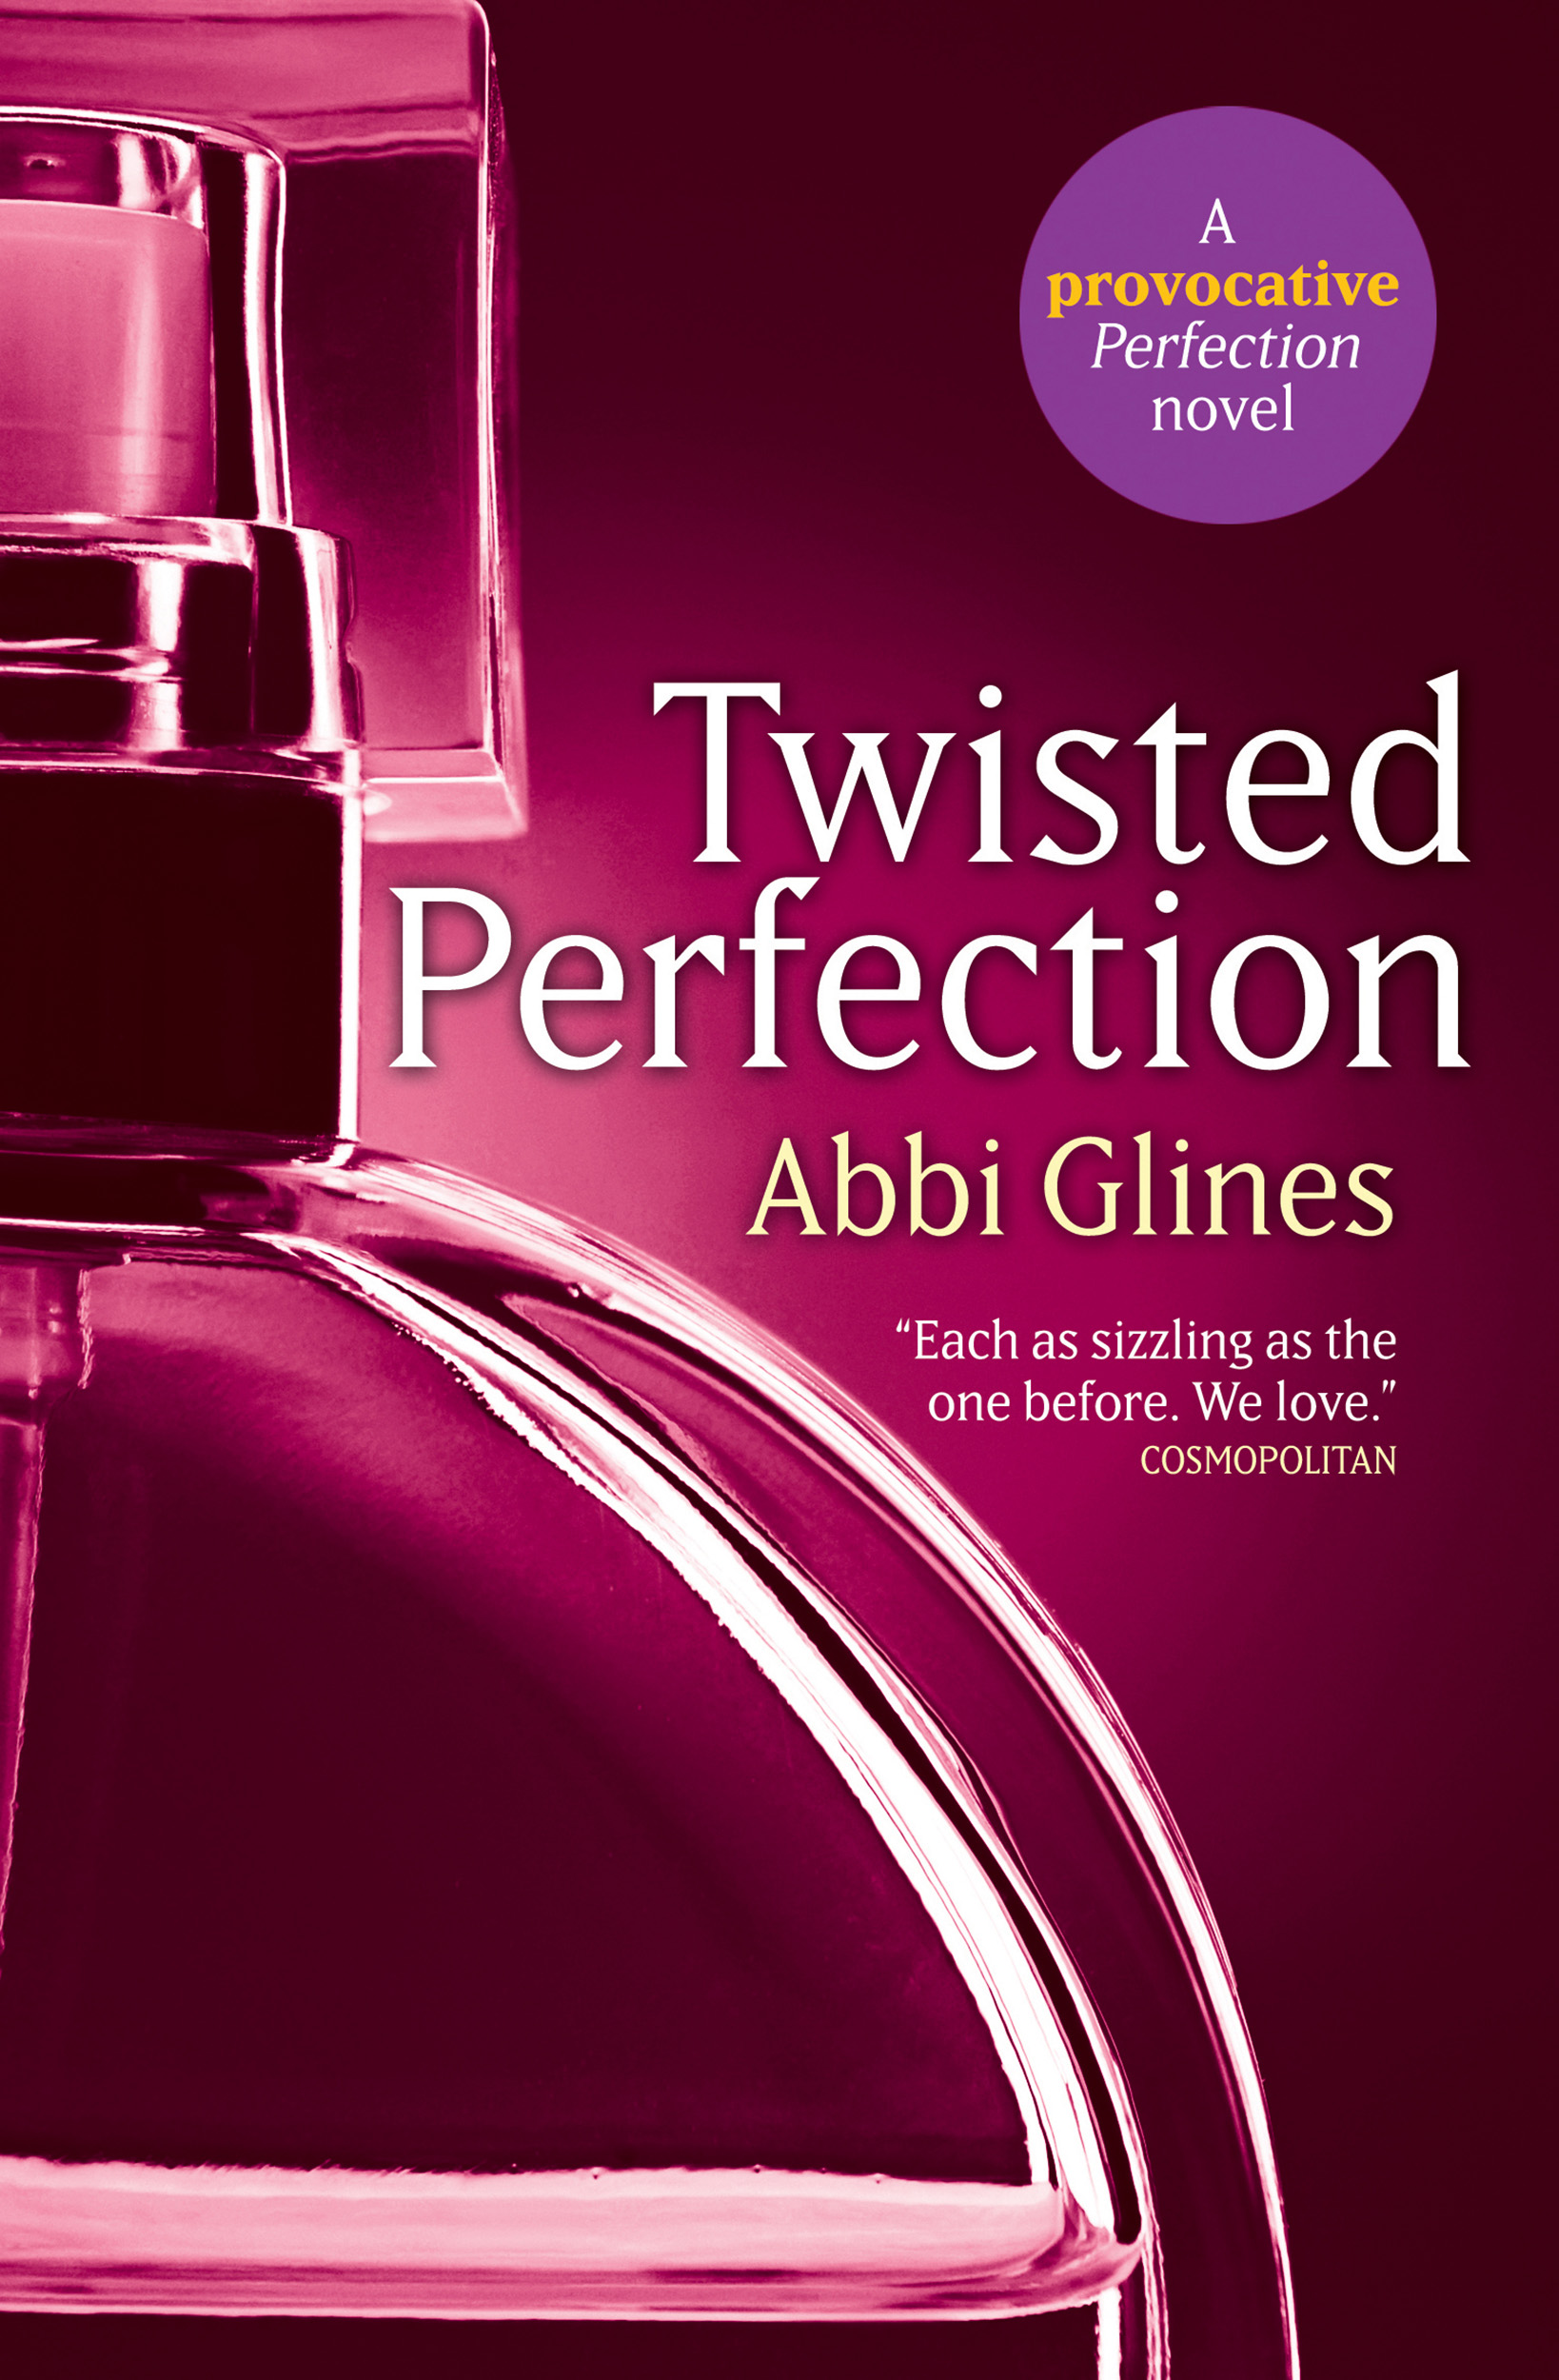 Abbi glines official publisher page simon schuster canada book cover image jpg twisted perfection fandeluxe Gallery